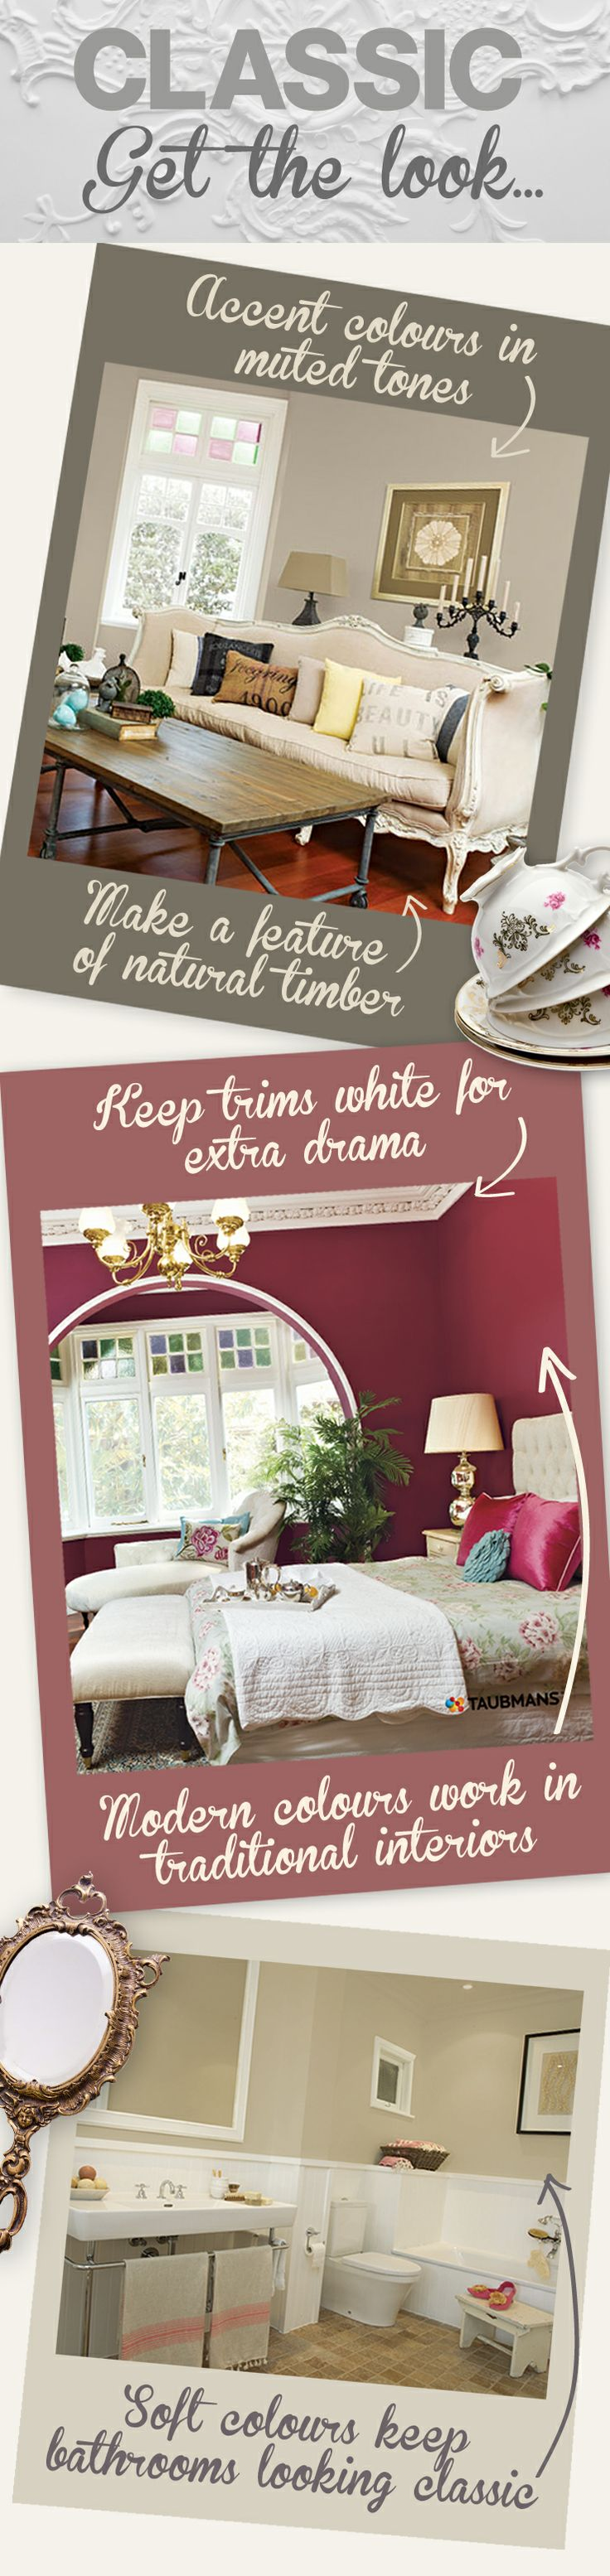 Keep the above in mind when attempting to recreate the classic look in your home. #Taubmans #Paint